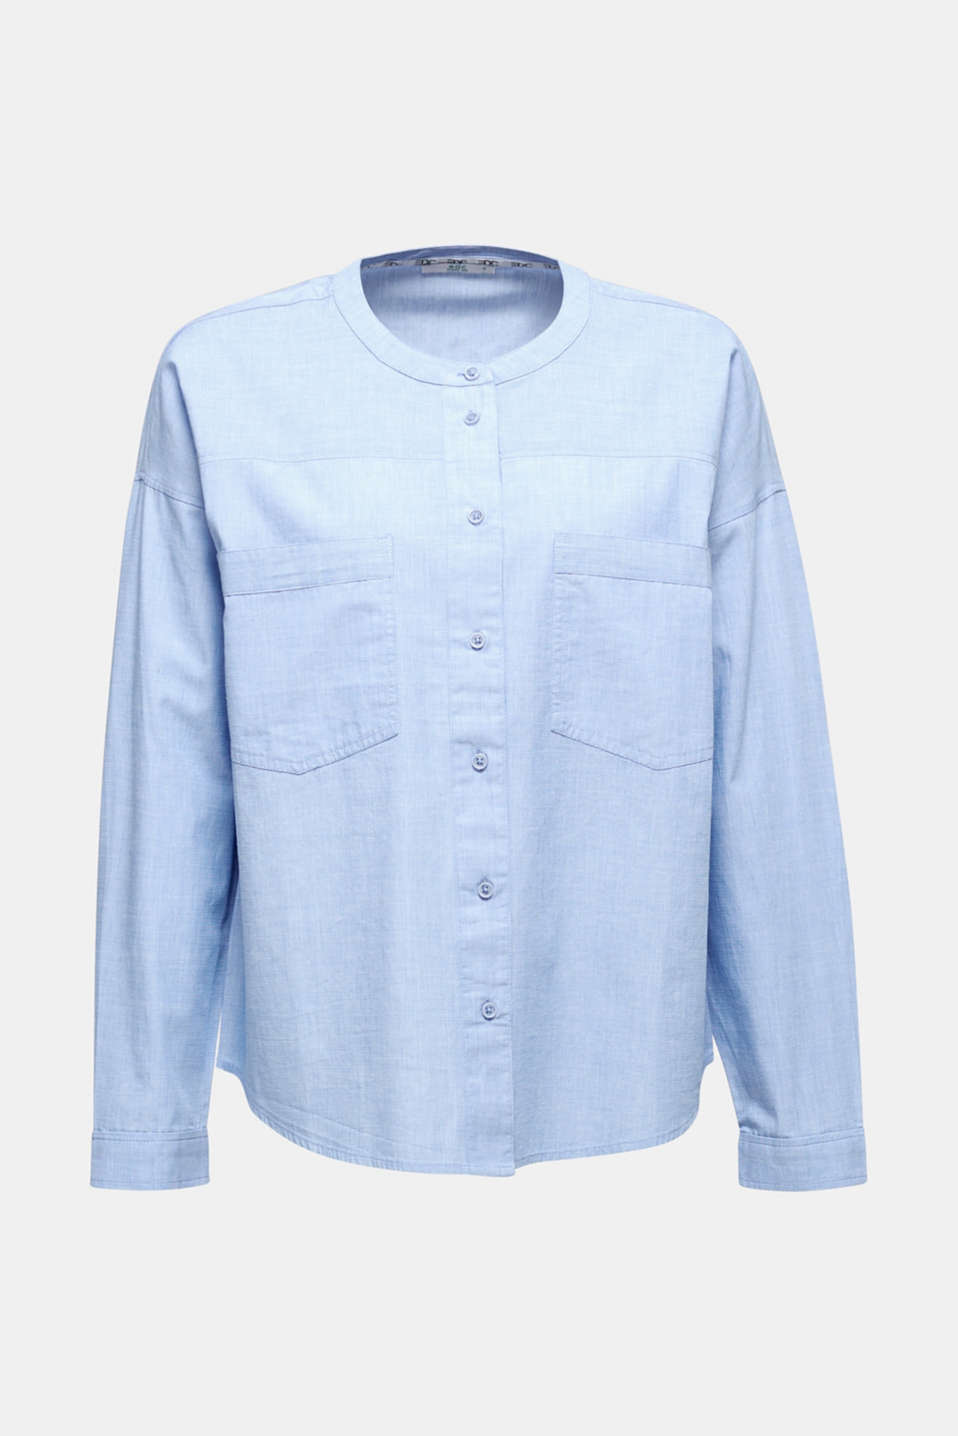 Oversized chambray blouse, 100% cotton, BLUE LAVENDER, detail image number 5